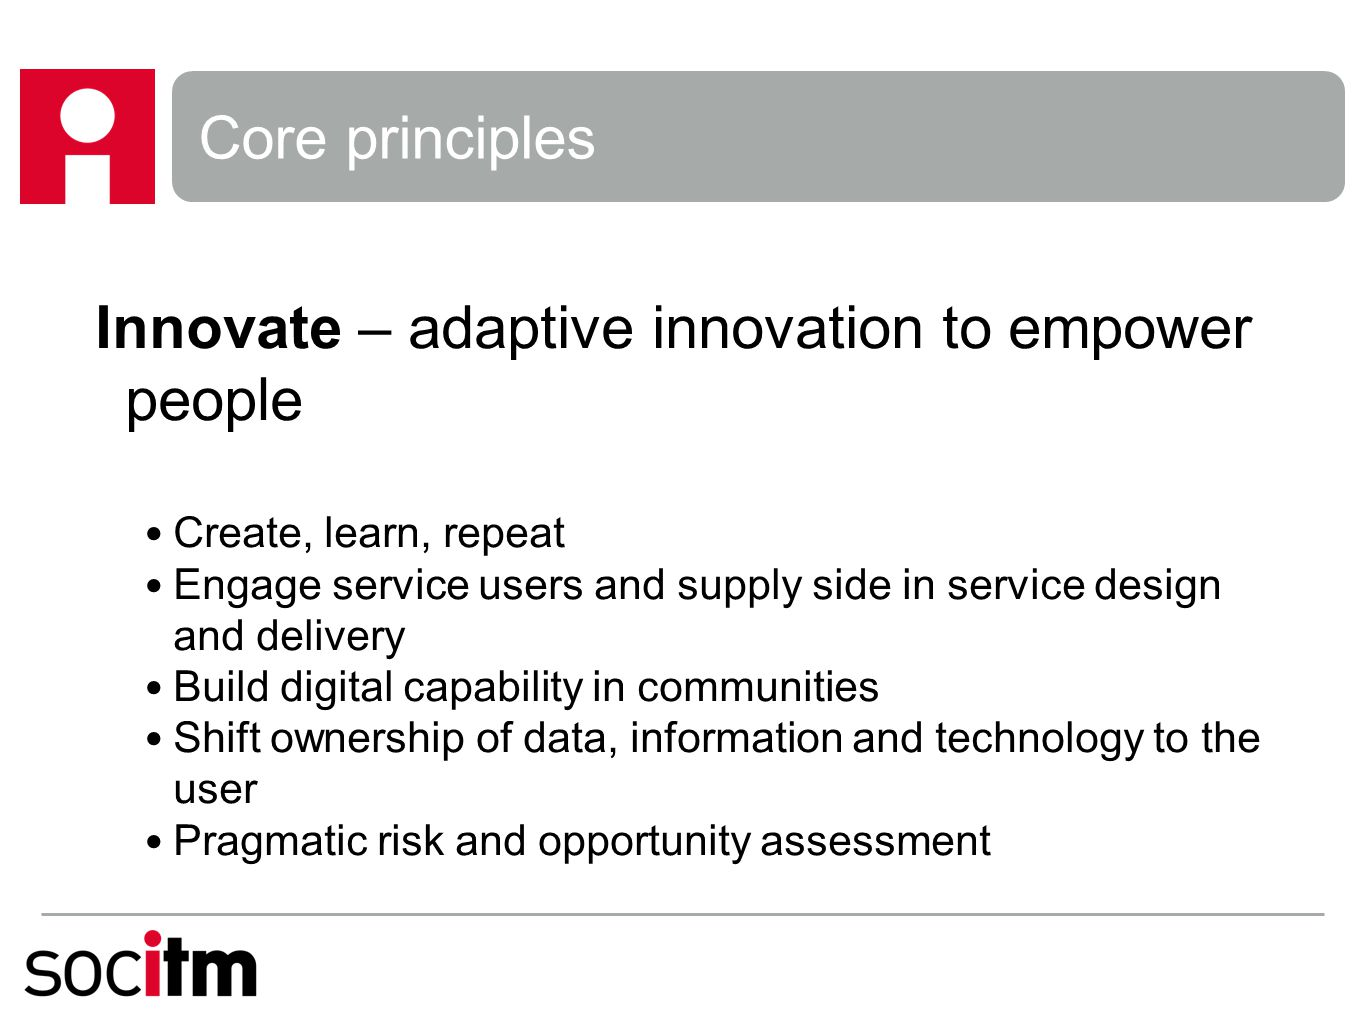 Core principles Innovate – adaptive innovation to empower people Create, learn, repeat Engage service users and supply side in service design and delivery Build digital capability in communities Shift ownership of data, information and technology to the user Pragmatic risk and opportunity assessment